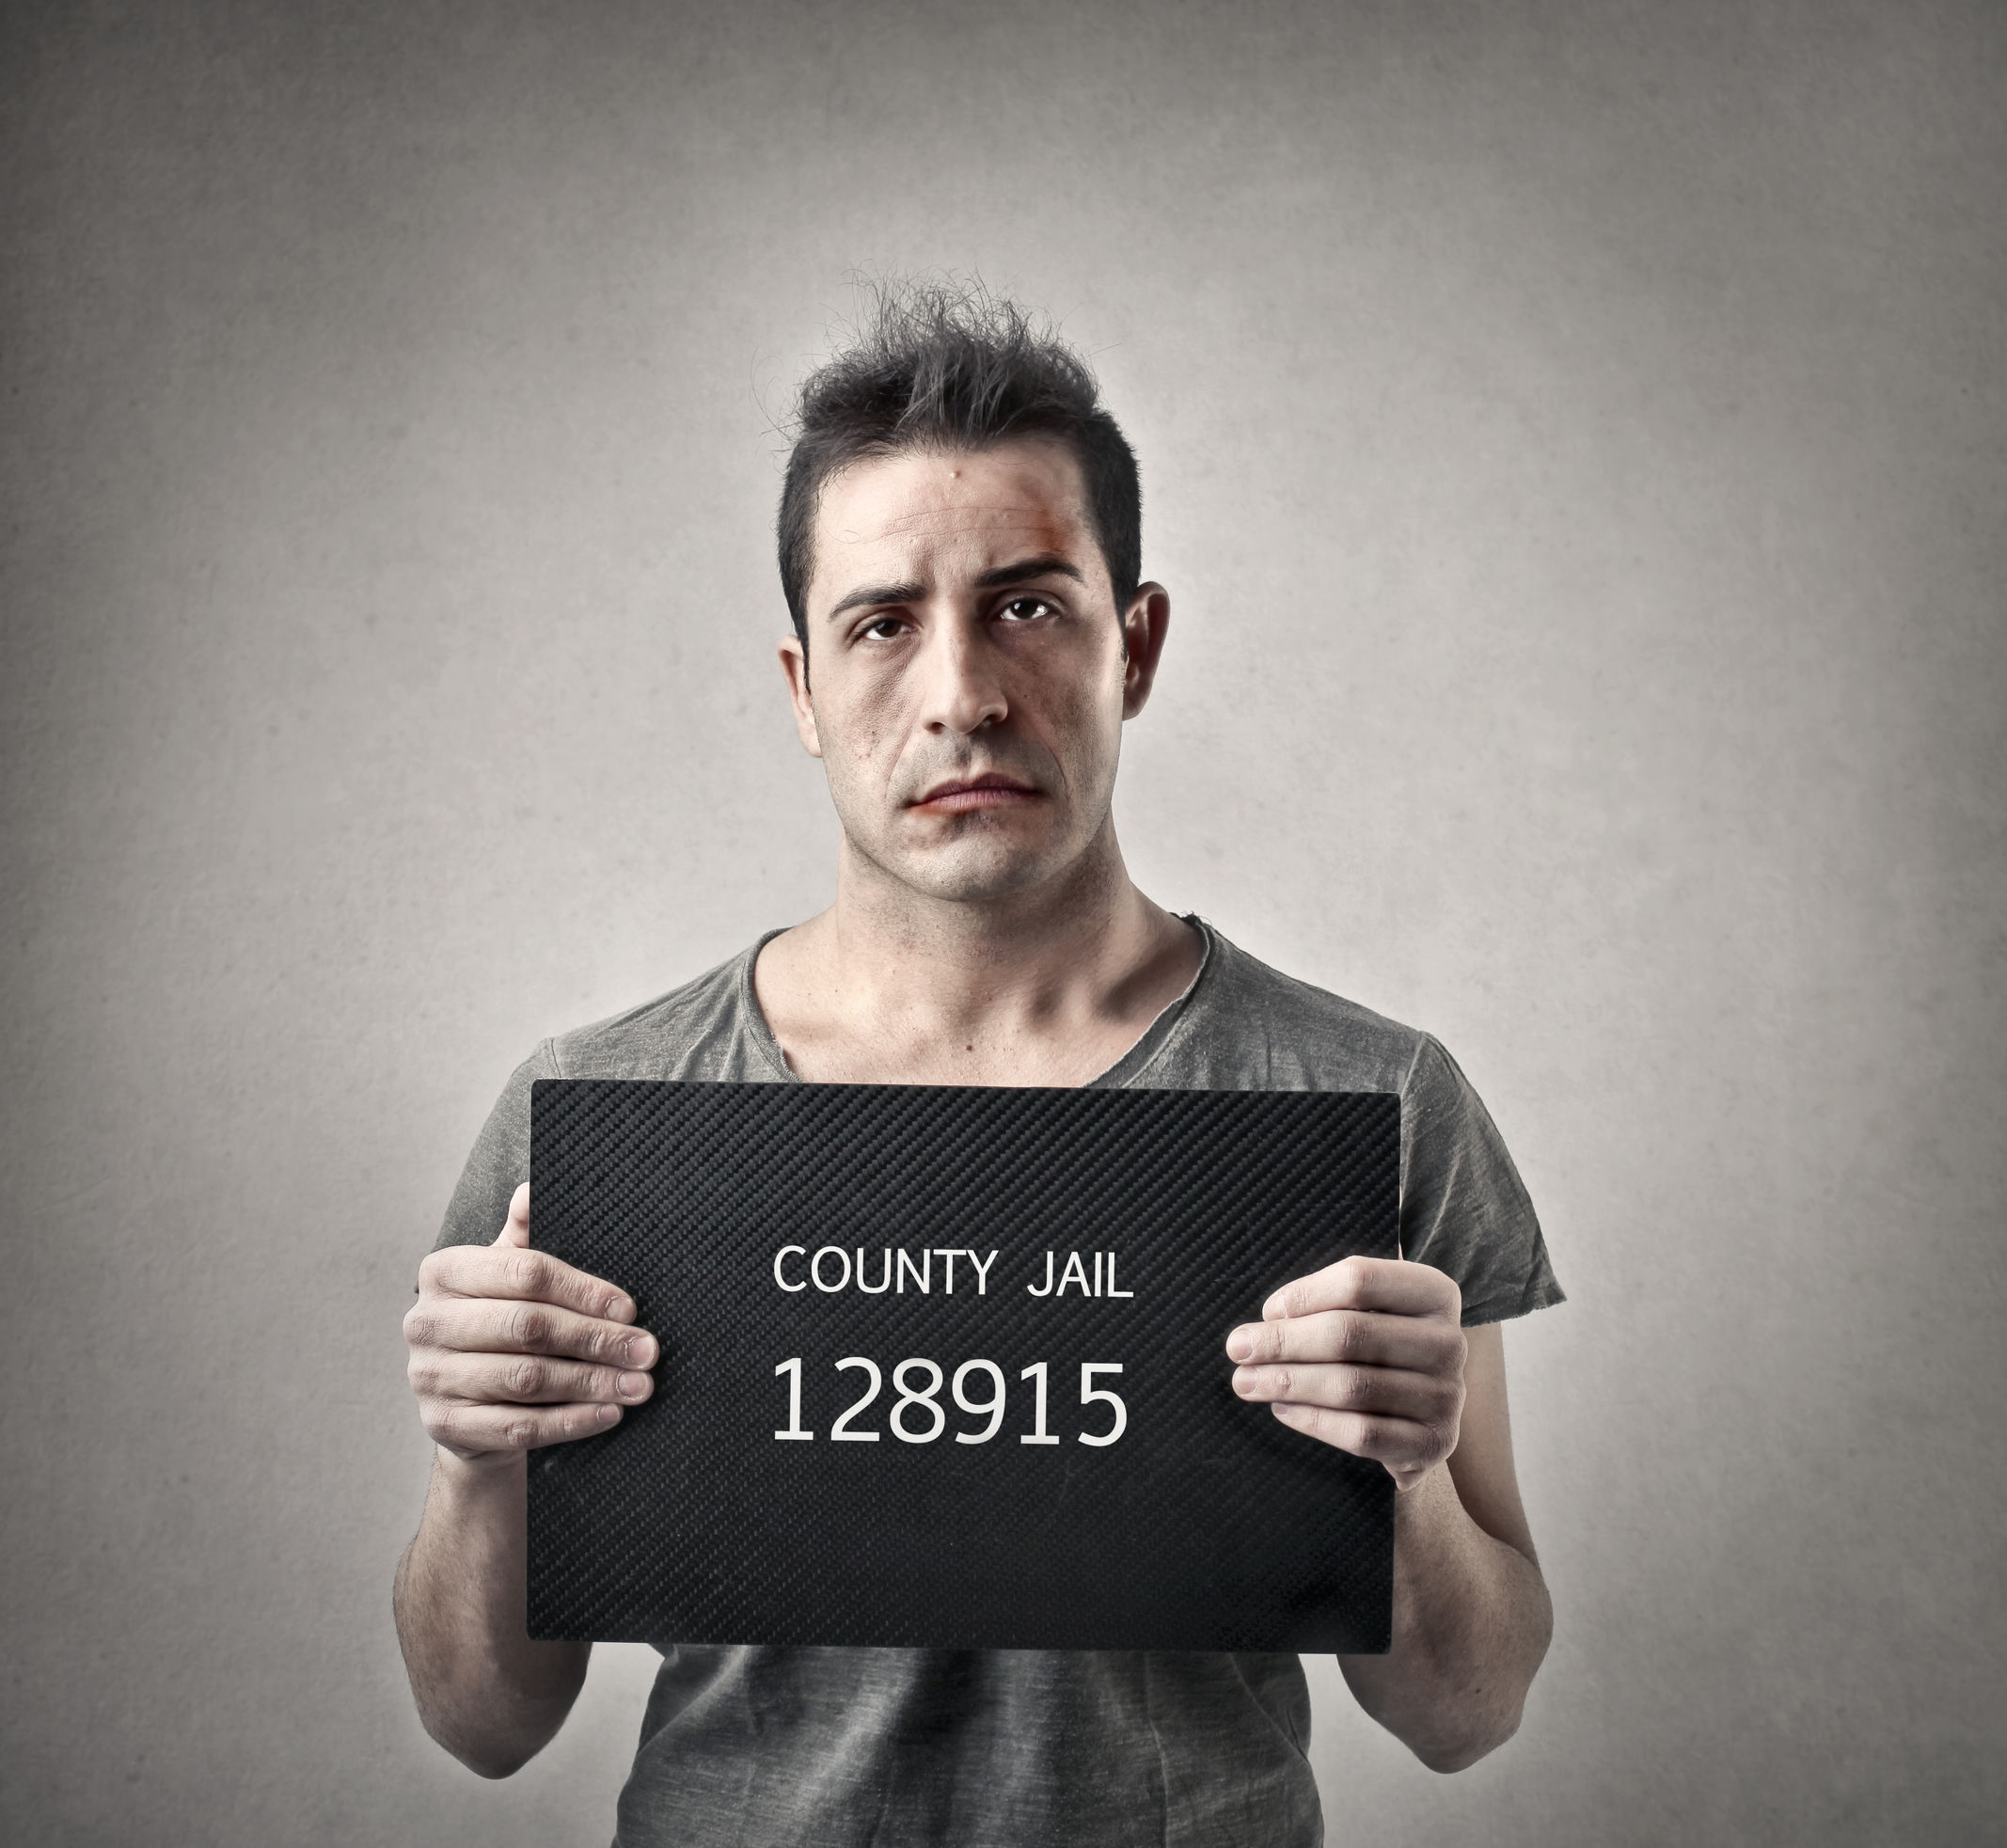 How to Find an Offender Using Inmate Locators